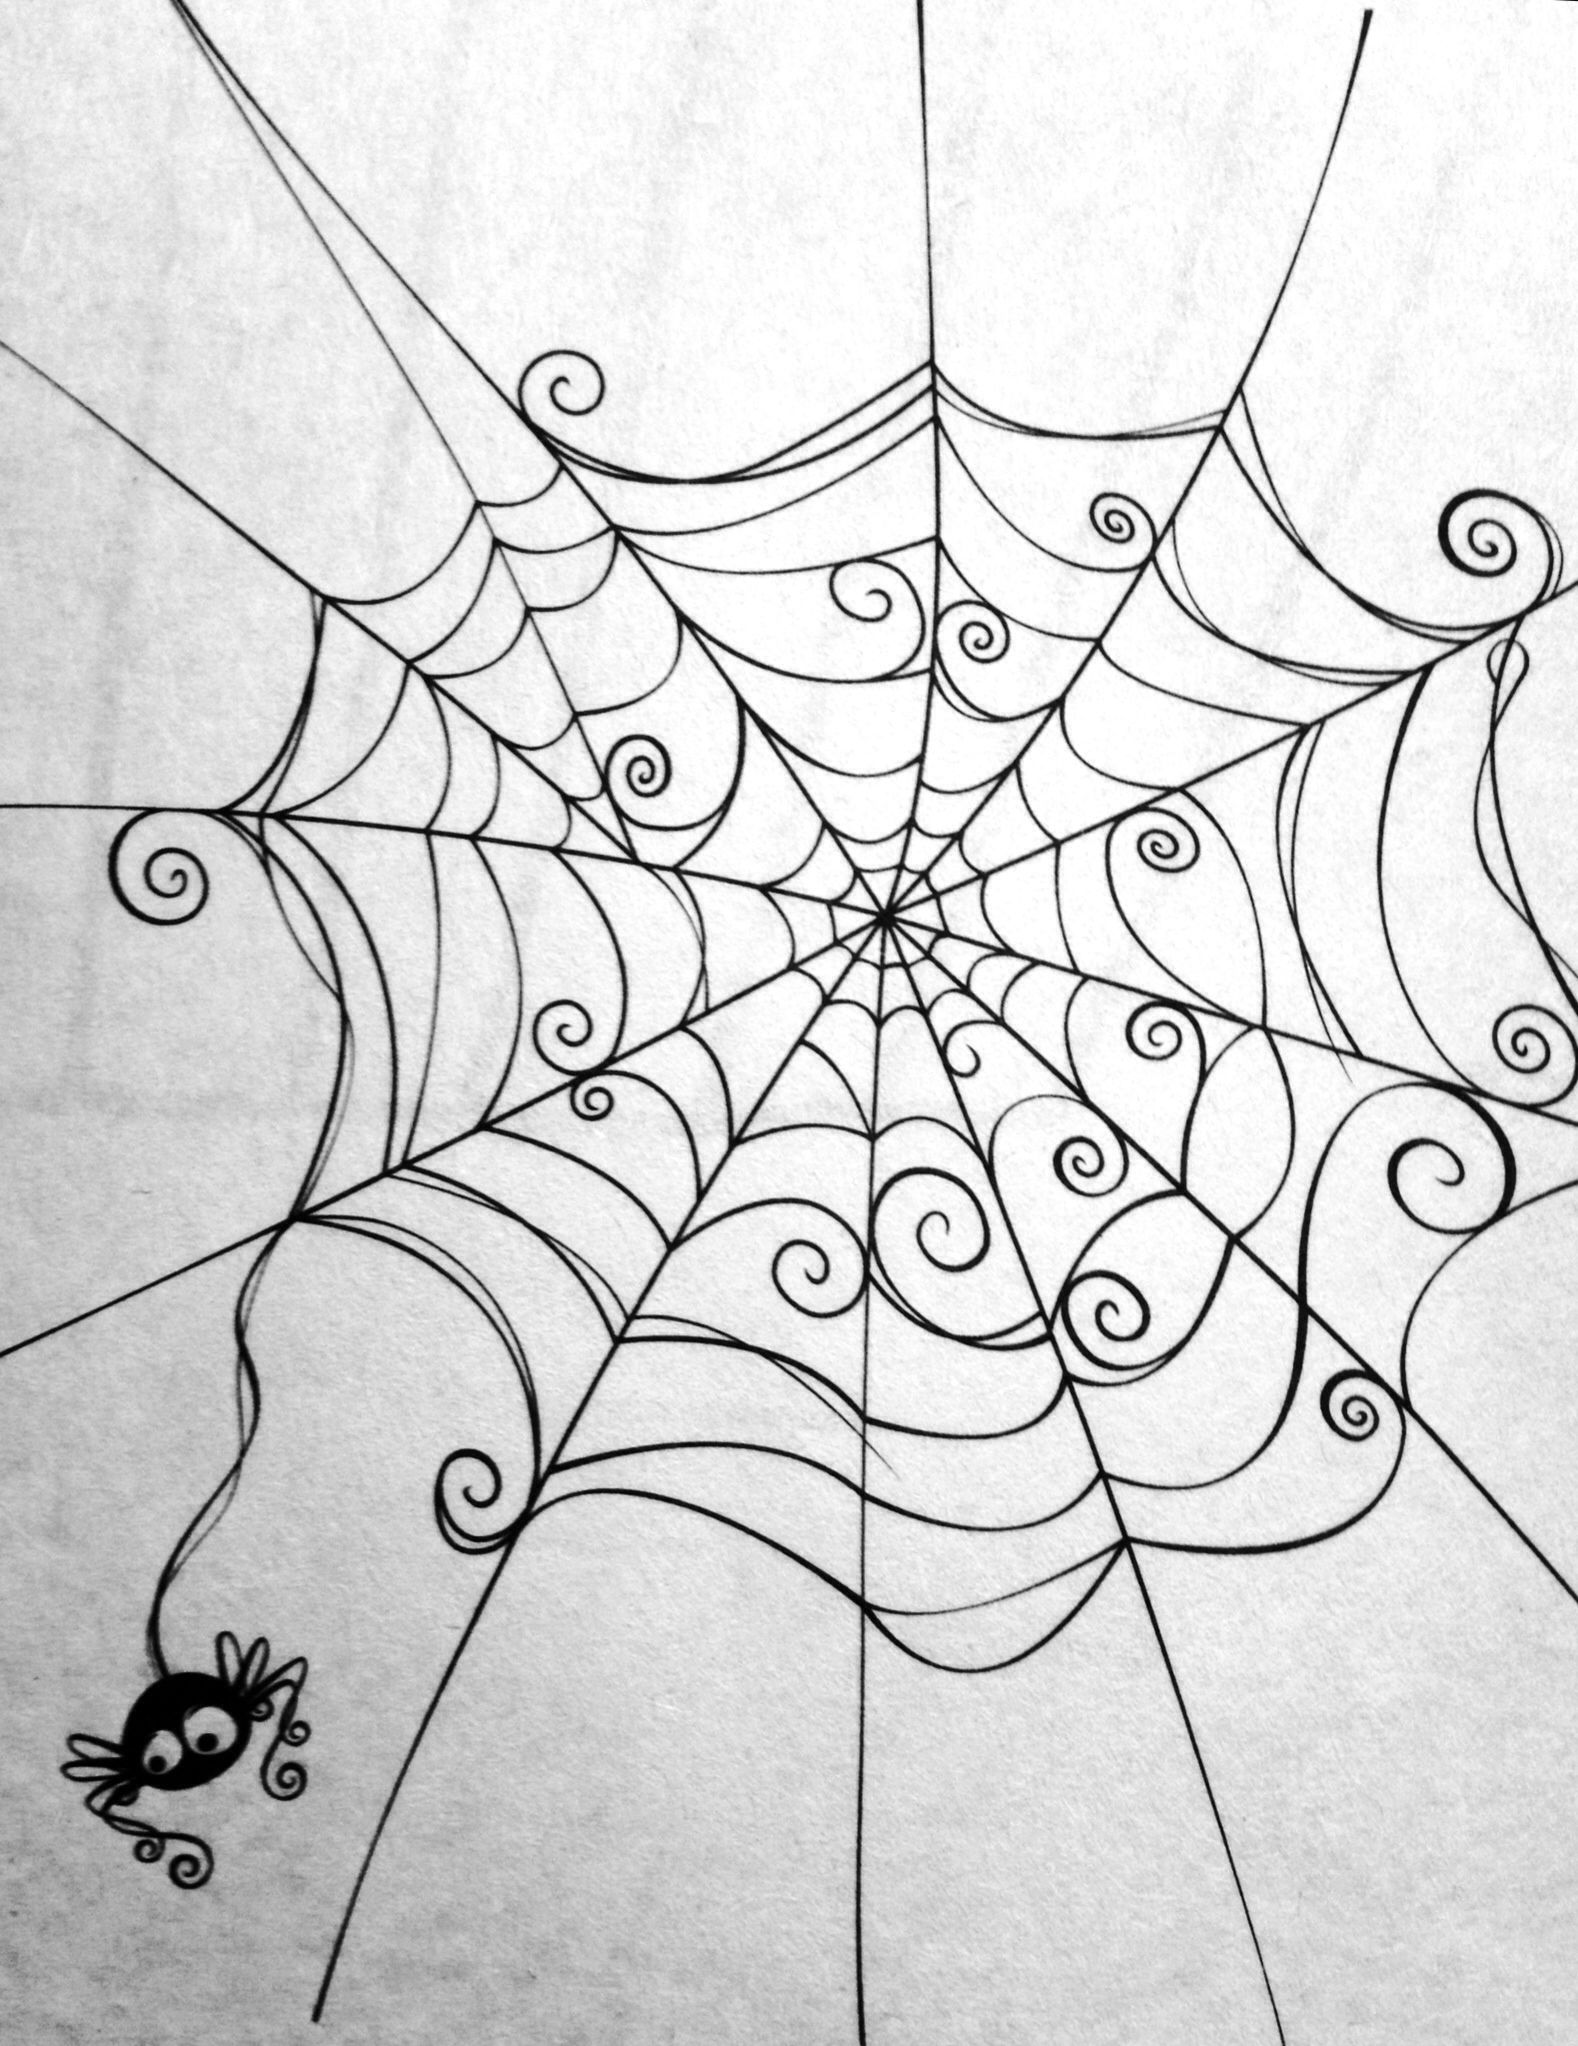 image transparent stock Cute spider web clipart. Halloween art and printables